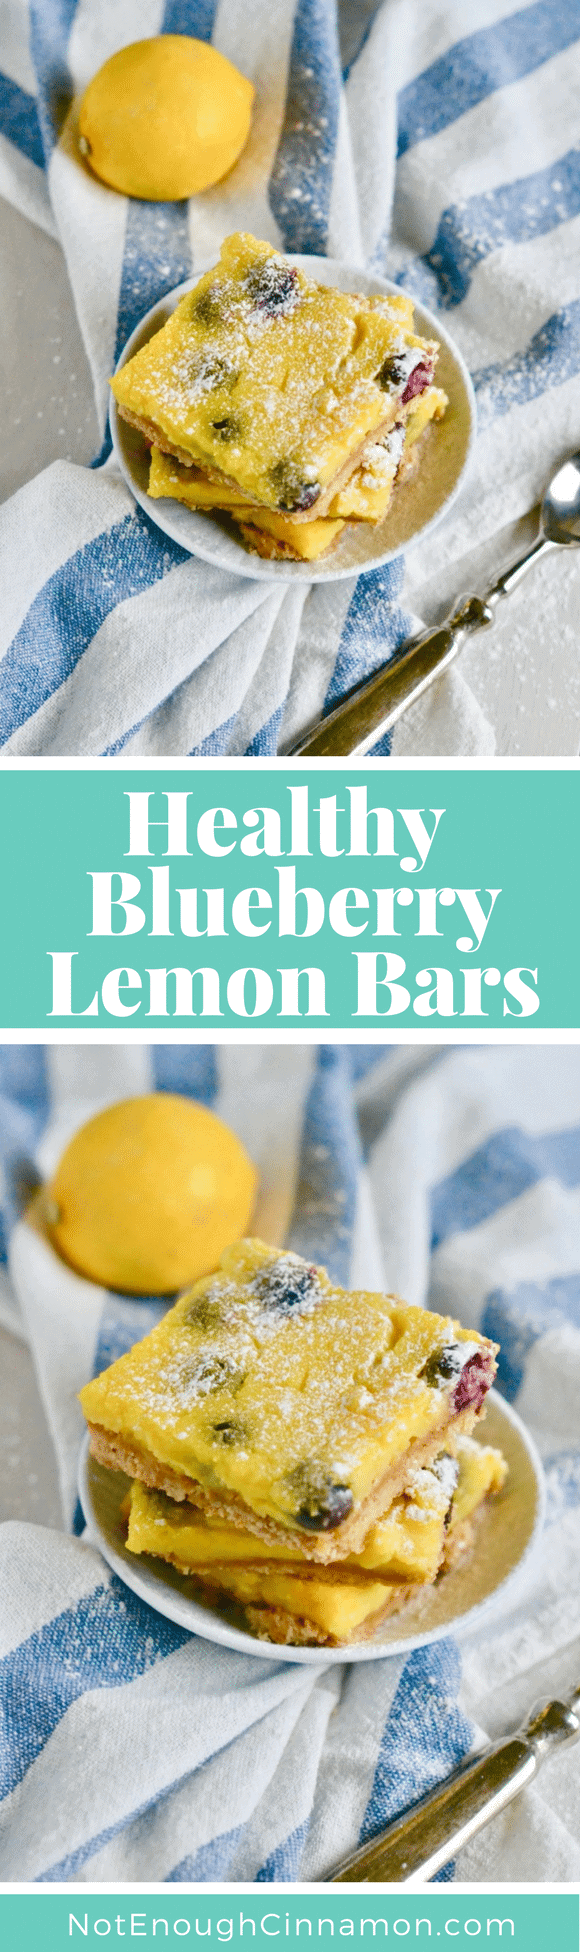 Lemon lovers need to try these Healthy Blueberry Lemon Bars! They come with an easy almond flour crust and are topped with homemade organic lemon curd with little sweet bursts of blueberries in every bite! #healthydesserts, #lemonbars, #blueberrydesserts, #healthybaking,